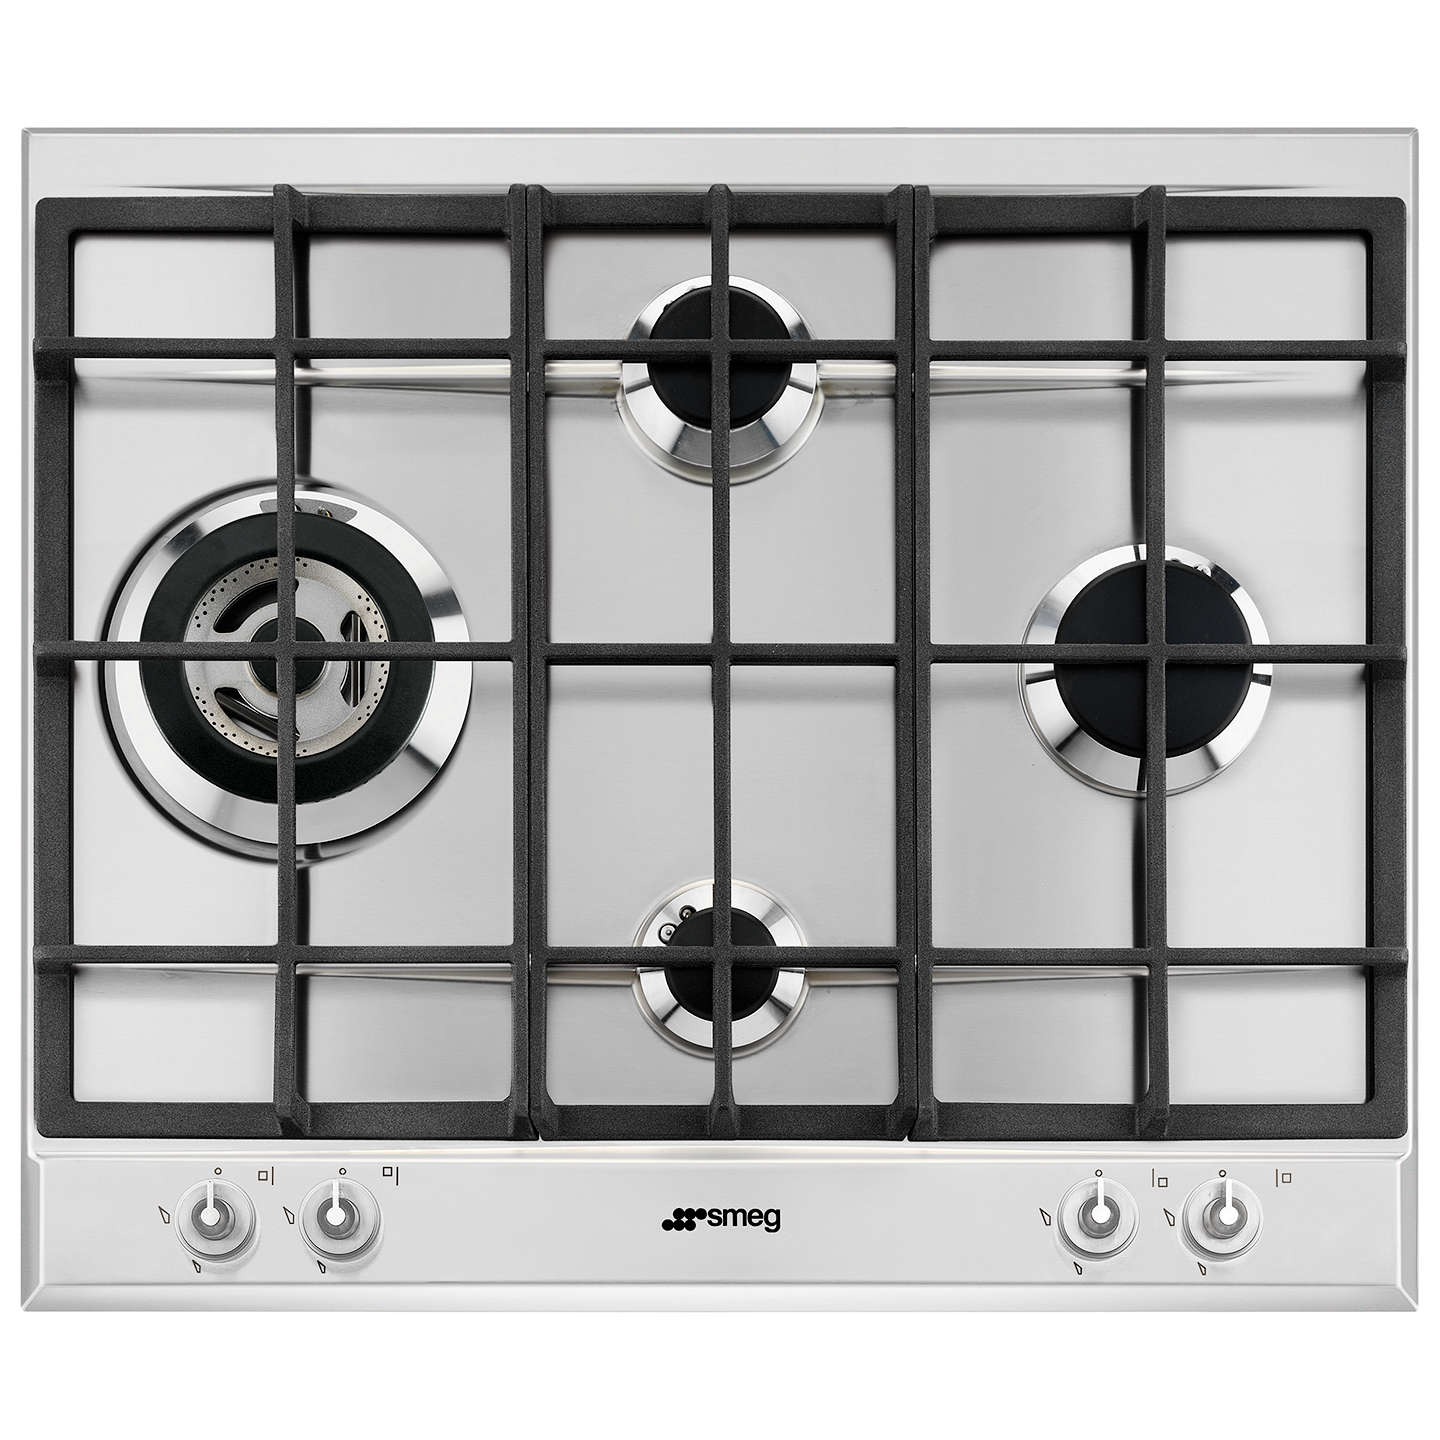 Smeg P1641XT Linea Aesthetic Gas Hob, Stainless Steel at John Lewis